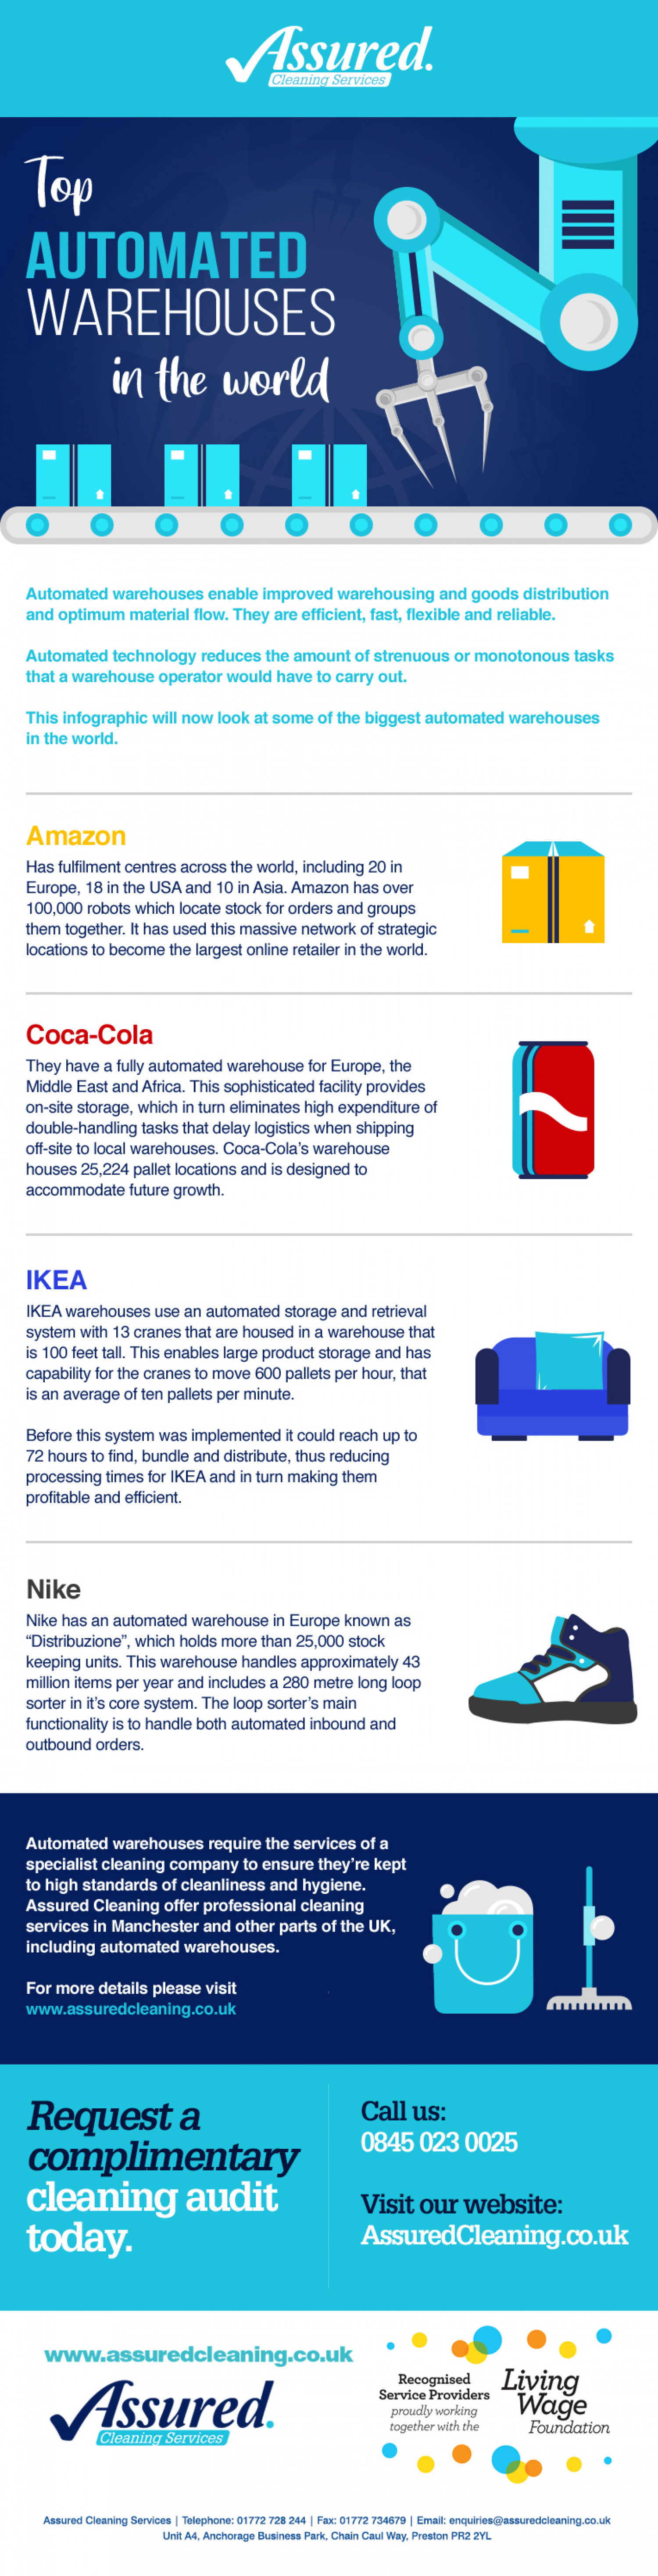 Top Automated Houses in the World Infographic